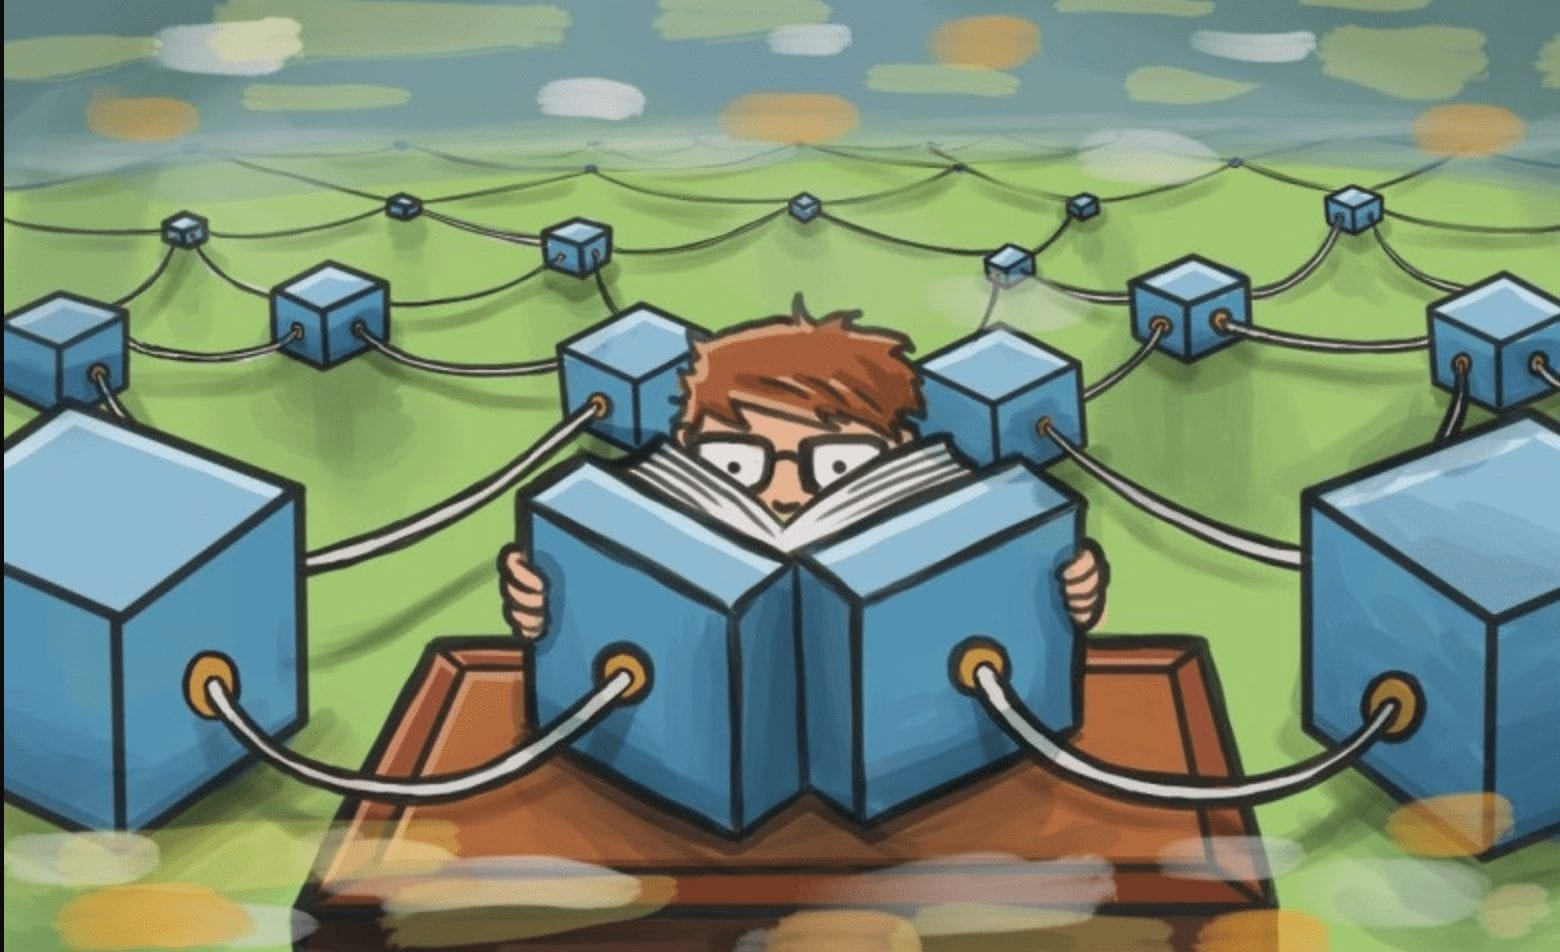 2 3 - Blockchain for Education: 4 Possible Use Cases